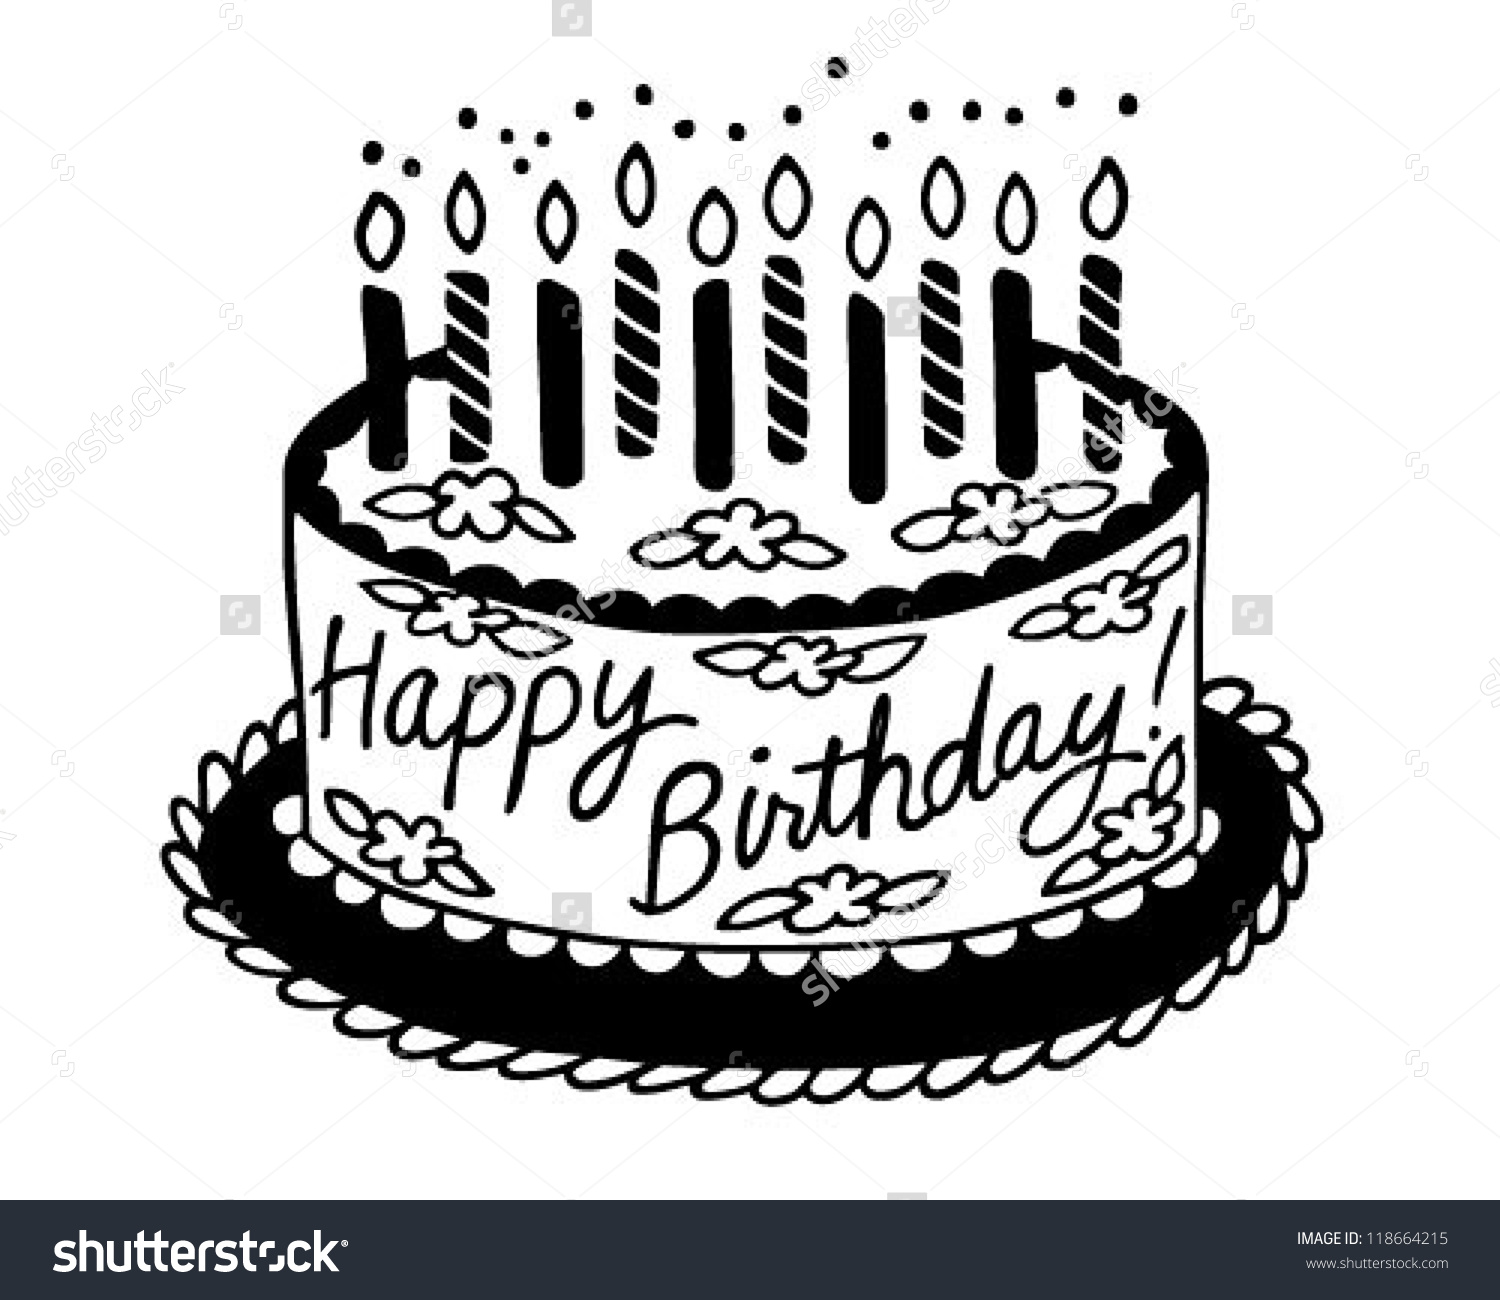 Happy birthday cake clipart black and white picture library Birthday Cake Clipart Black. Birthday. Free Images Birthday Cakes ... picture library